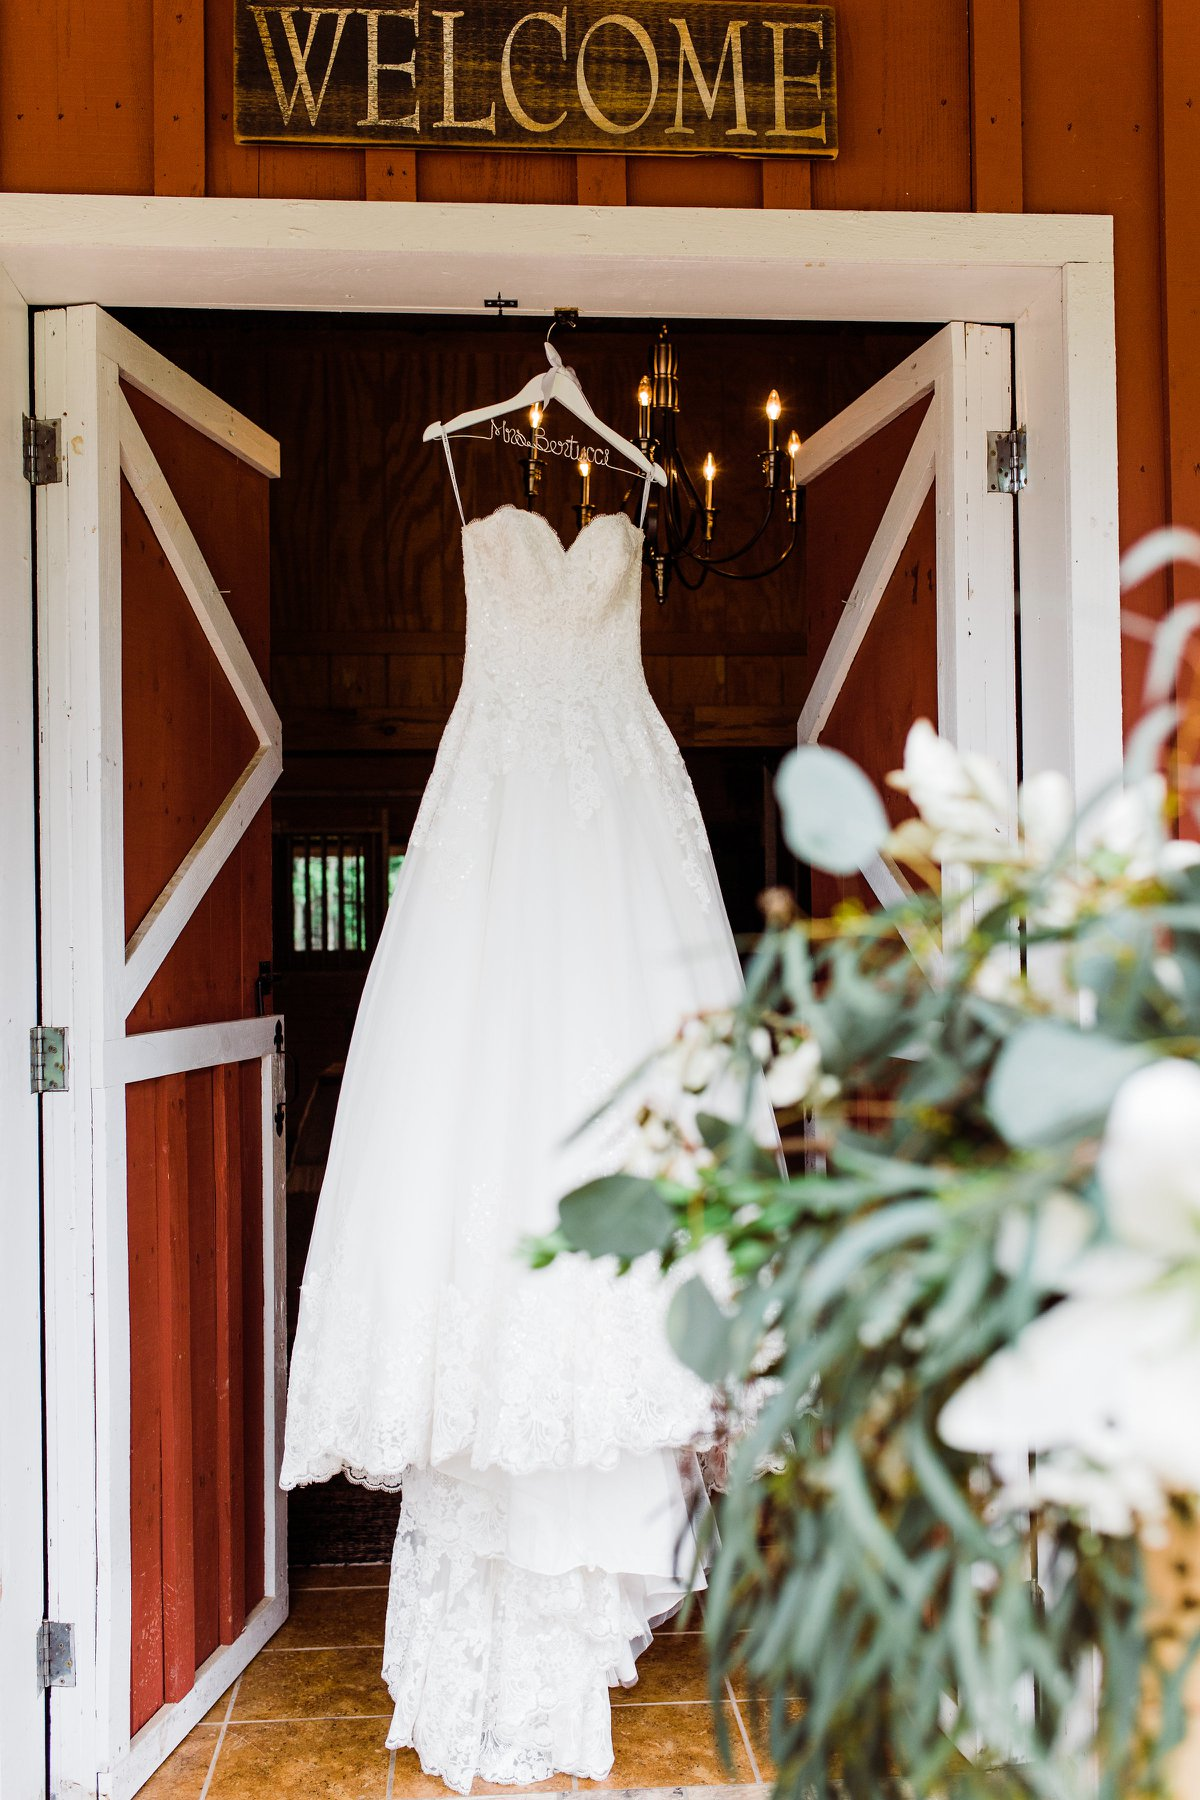 Wedding dress at door